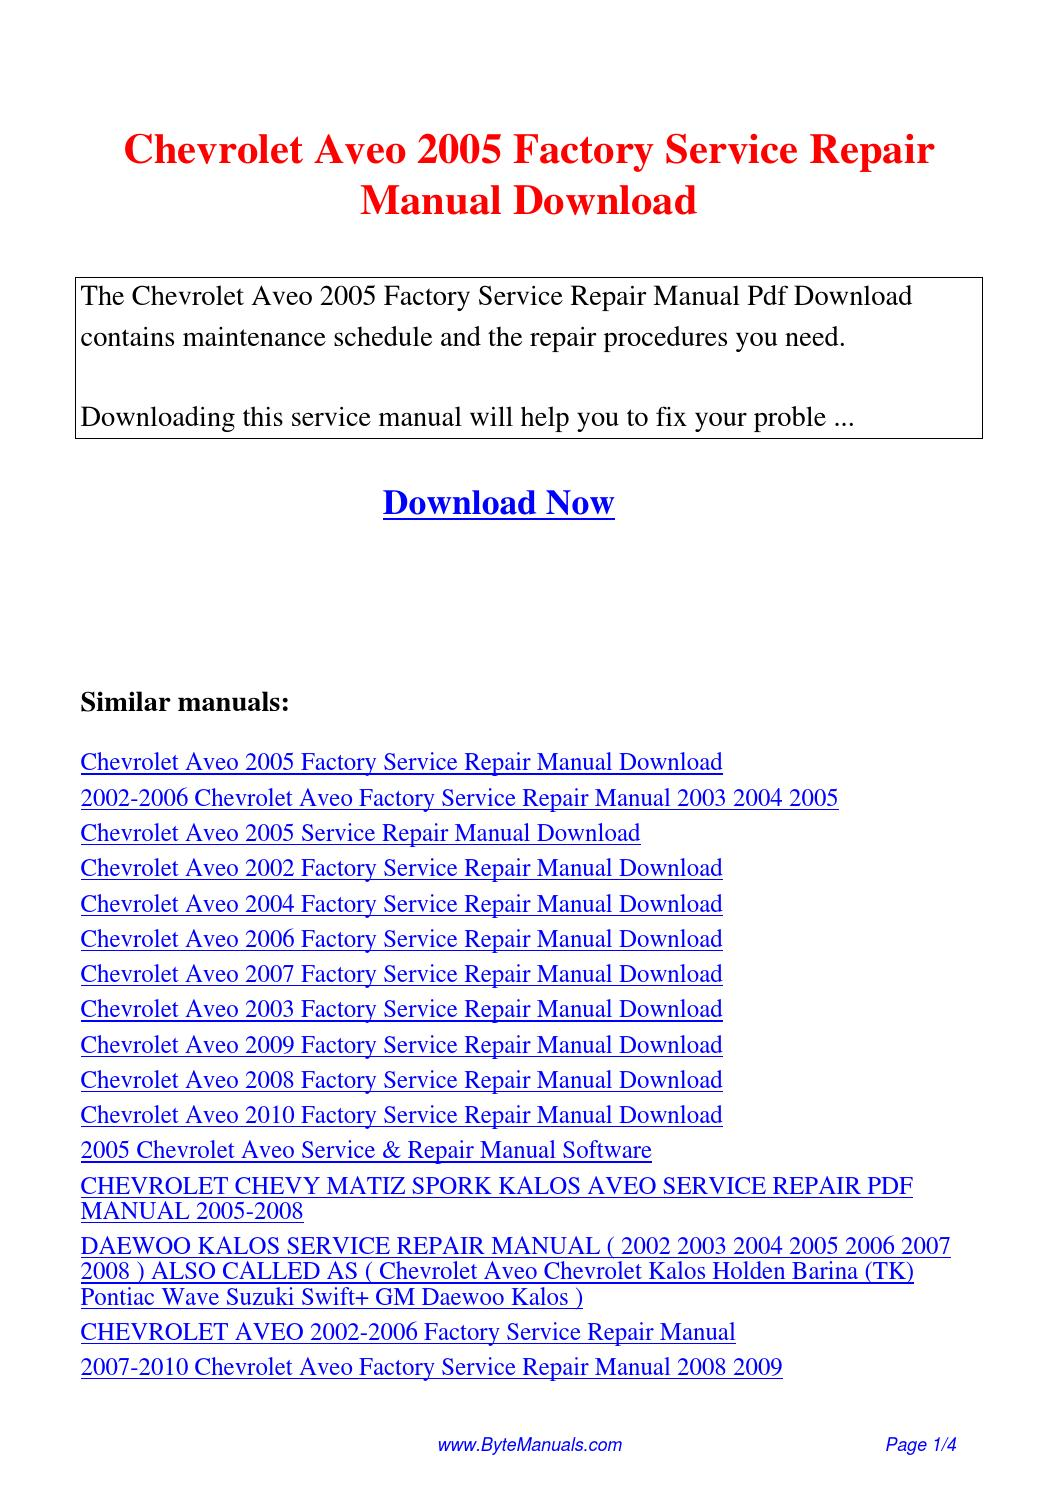 Chevrolet Aveo 2005 Factory Service Repair Manual.pdf by Ging Tang - issuu